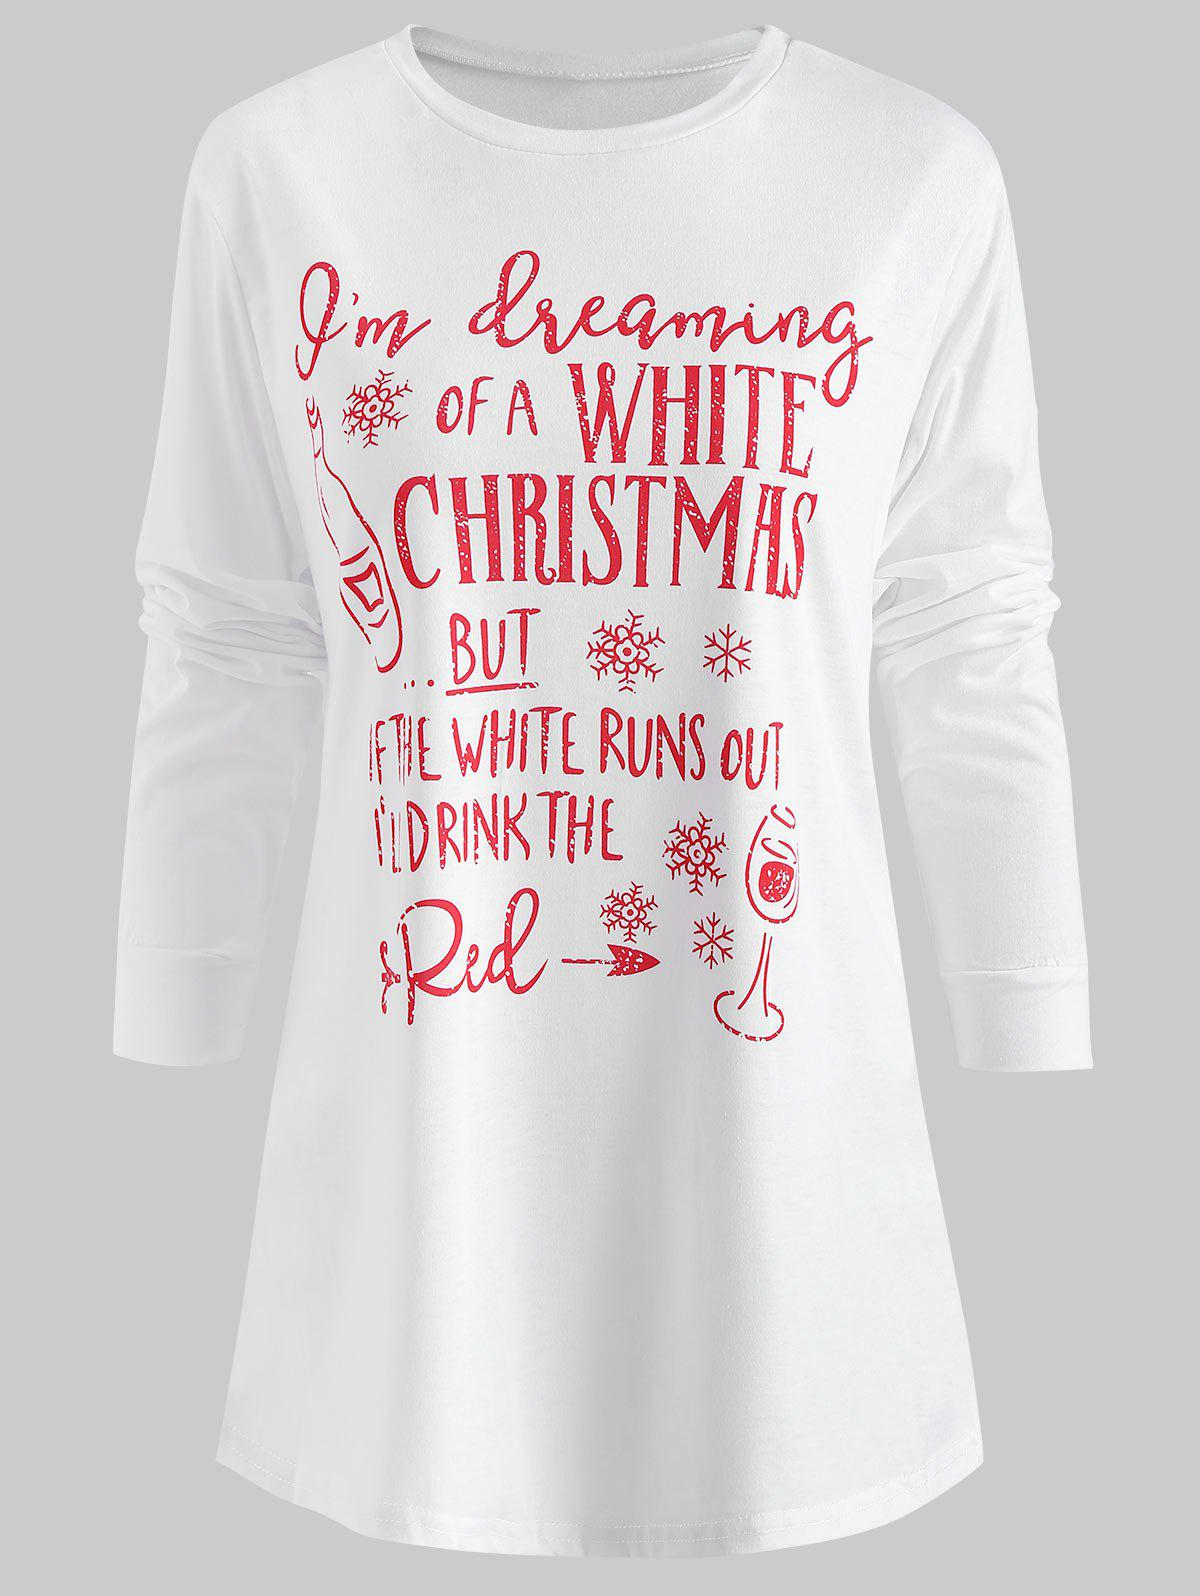 0971f2d9 57% OFF] Long Sleeve Christmas Graphic Print T-shirt | Rosegal